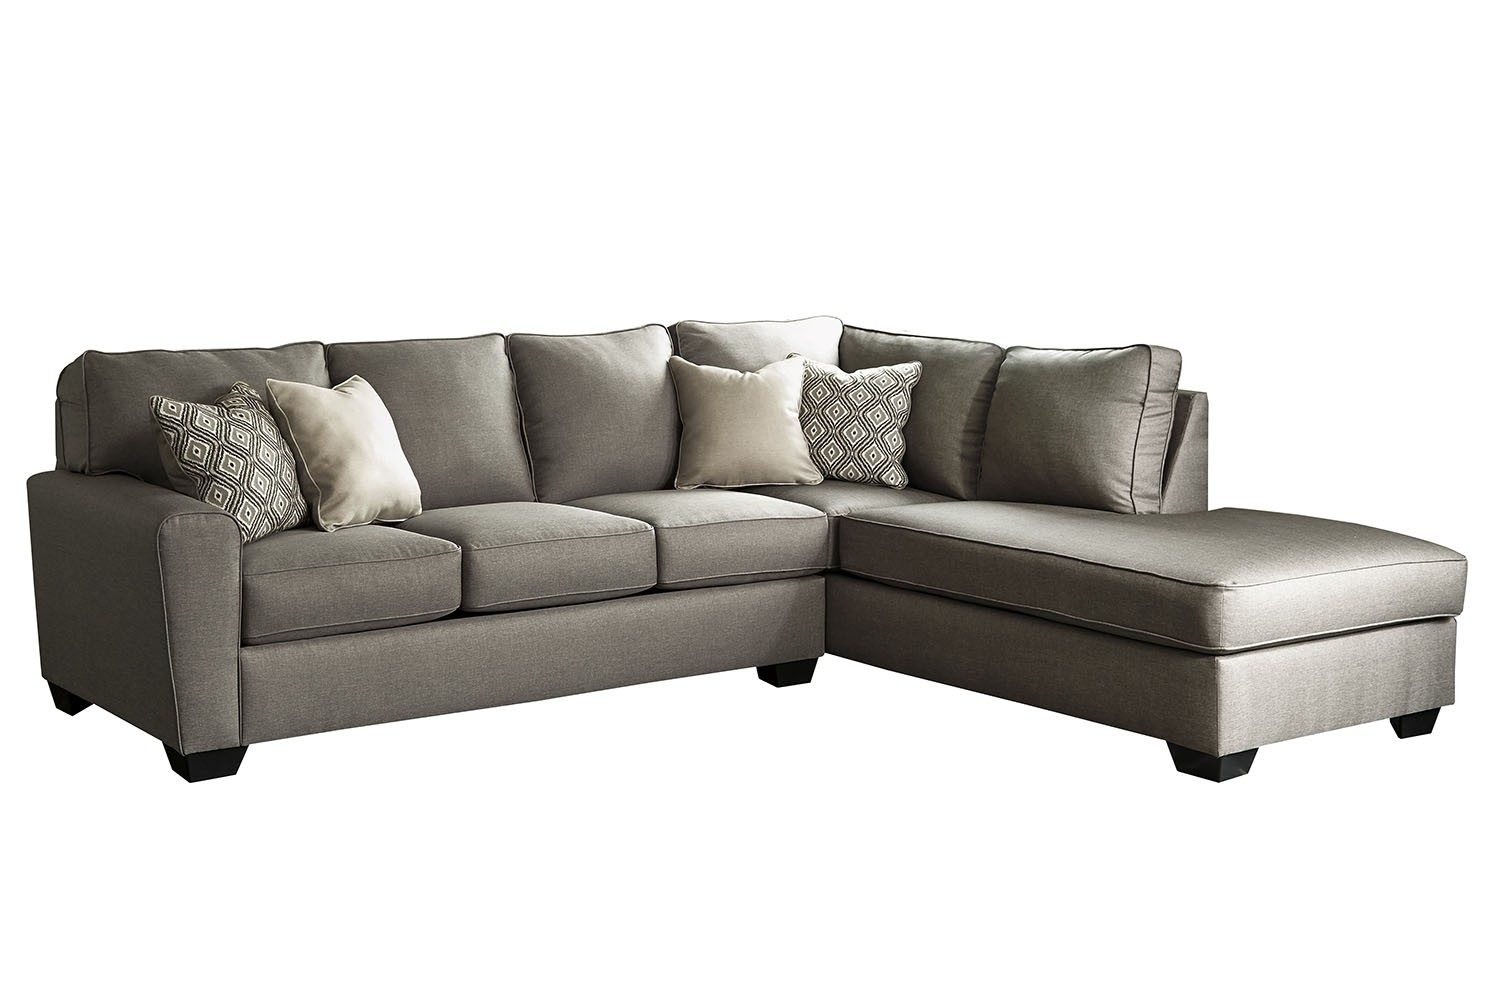 Sectional Sofas | Save Mor Online And In-Store intended for Marcus Chocolate 6 Piece Sectionals With Power Headrest And Usb (Image 21 of 30)